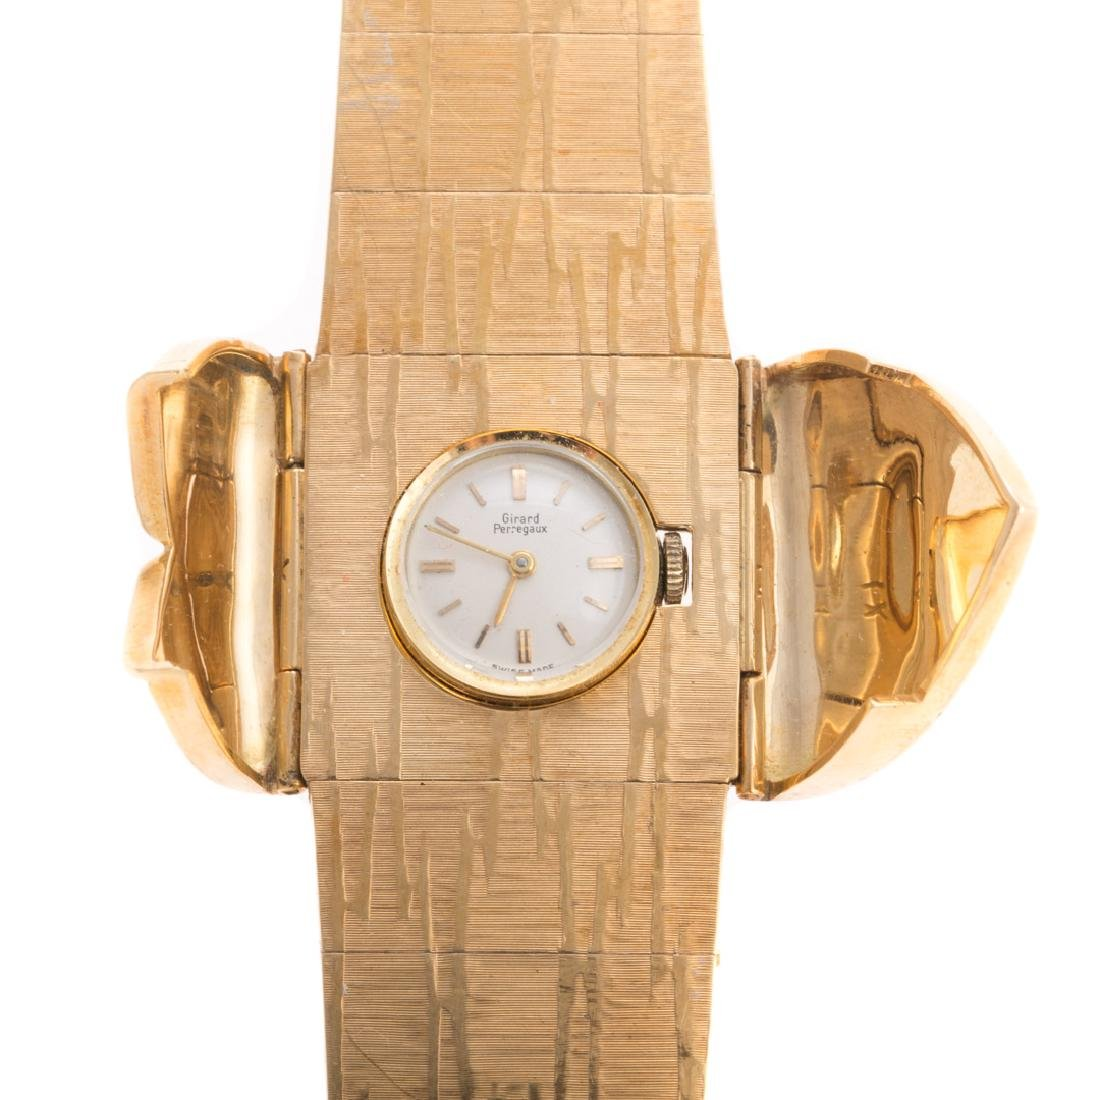 A Lady's 18K Girard Perregaux Covered Wrist Watch